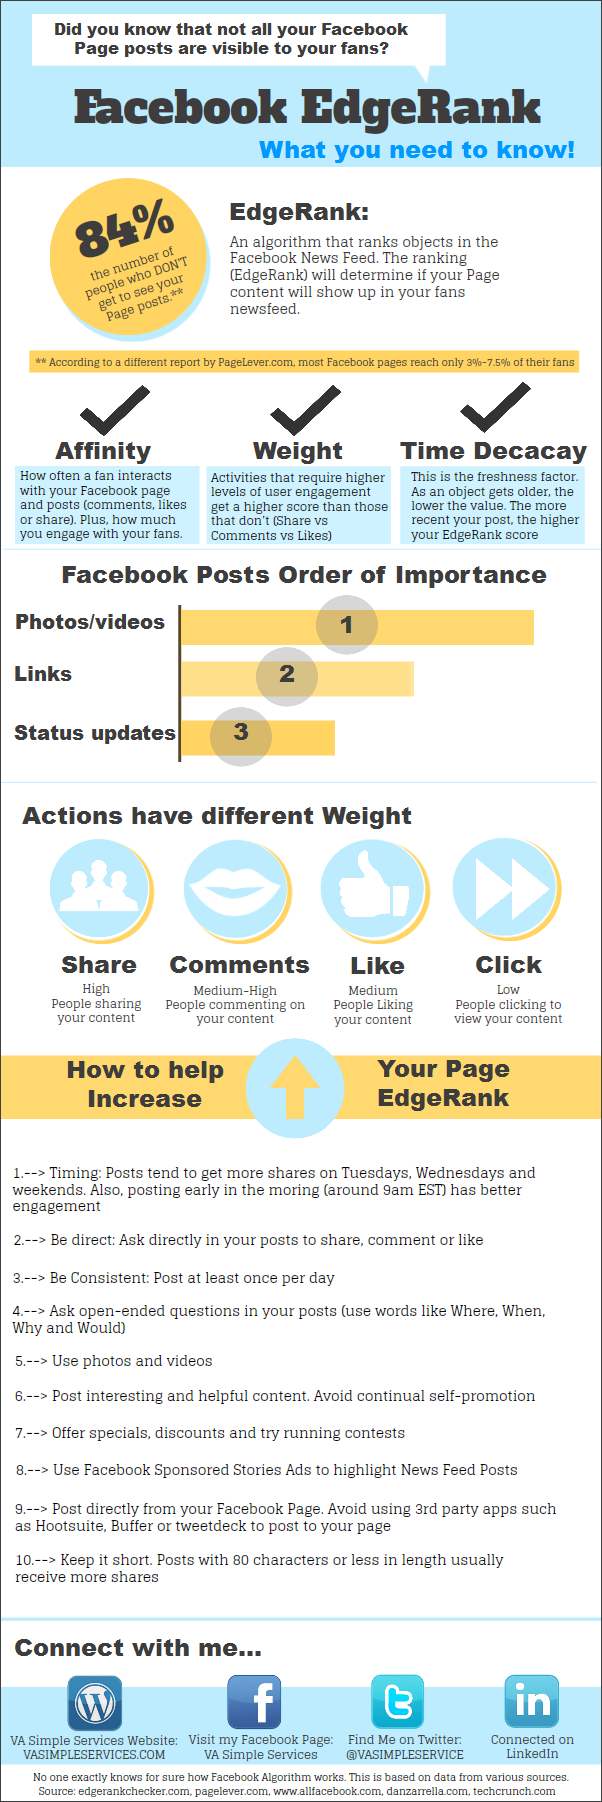 Excellent infographic demystifying Edgerank & how your business can get better news feed visibility!